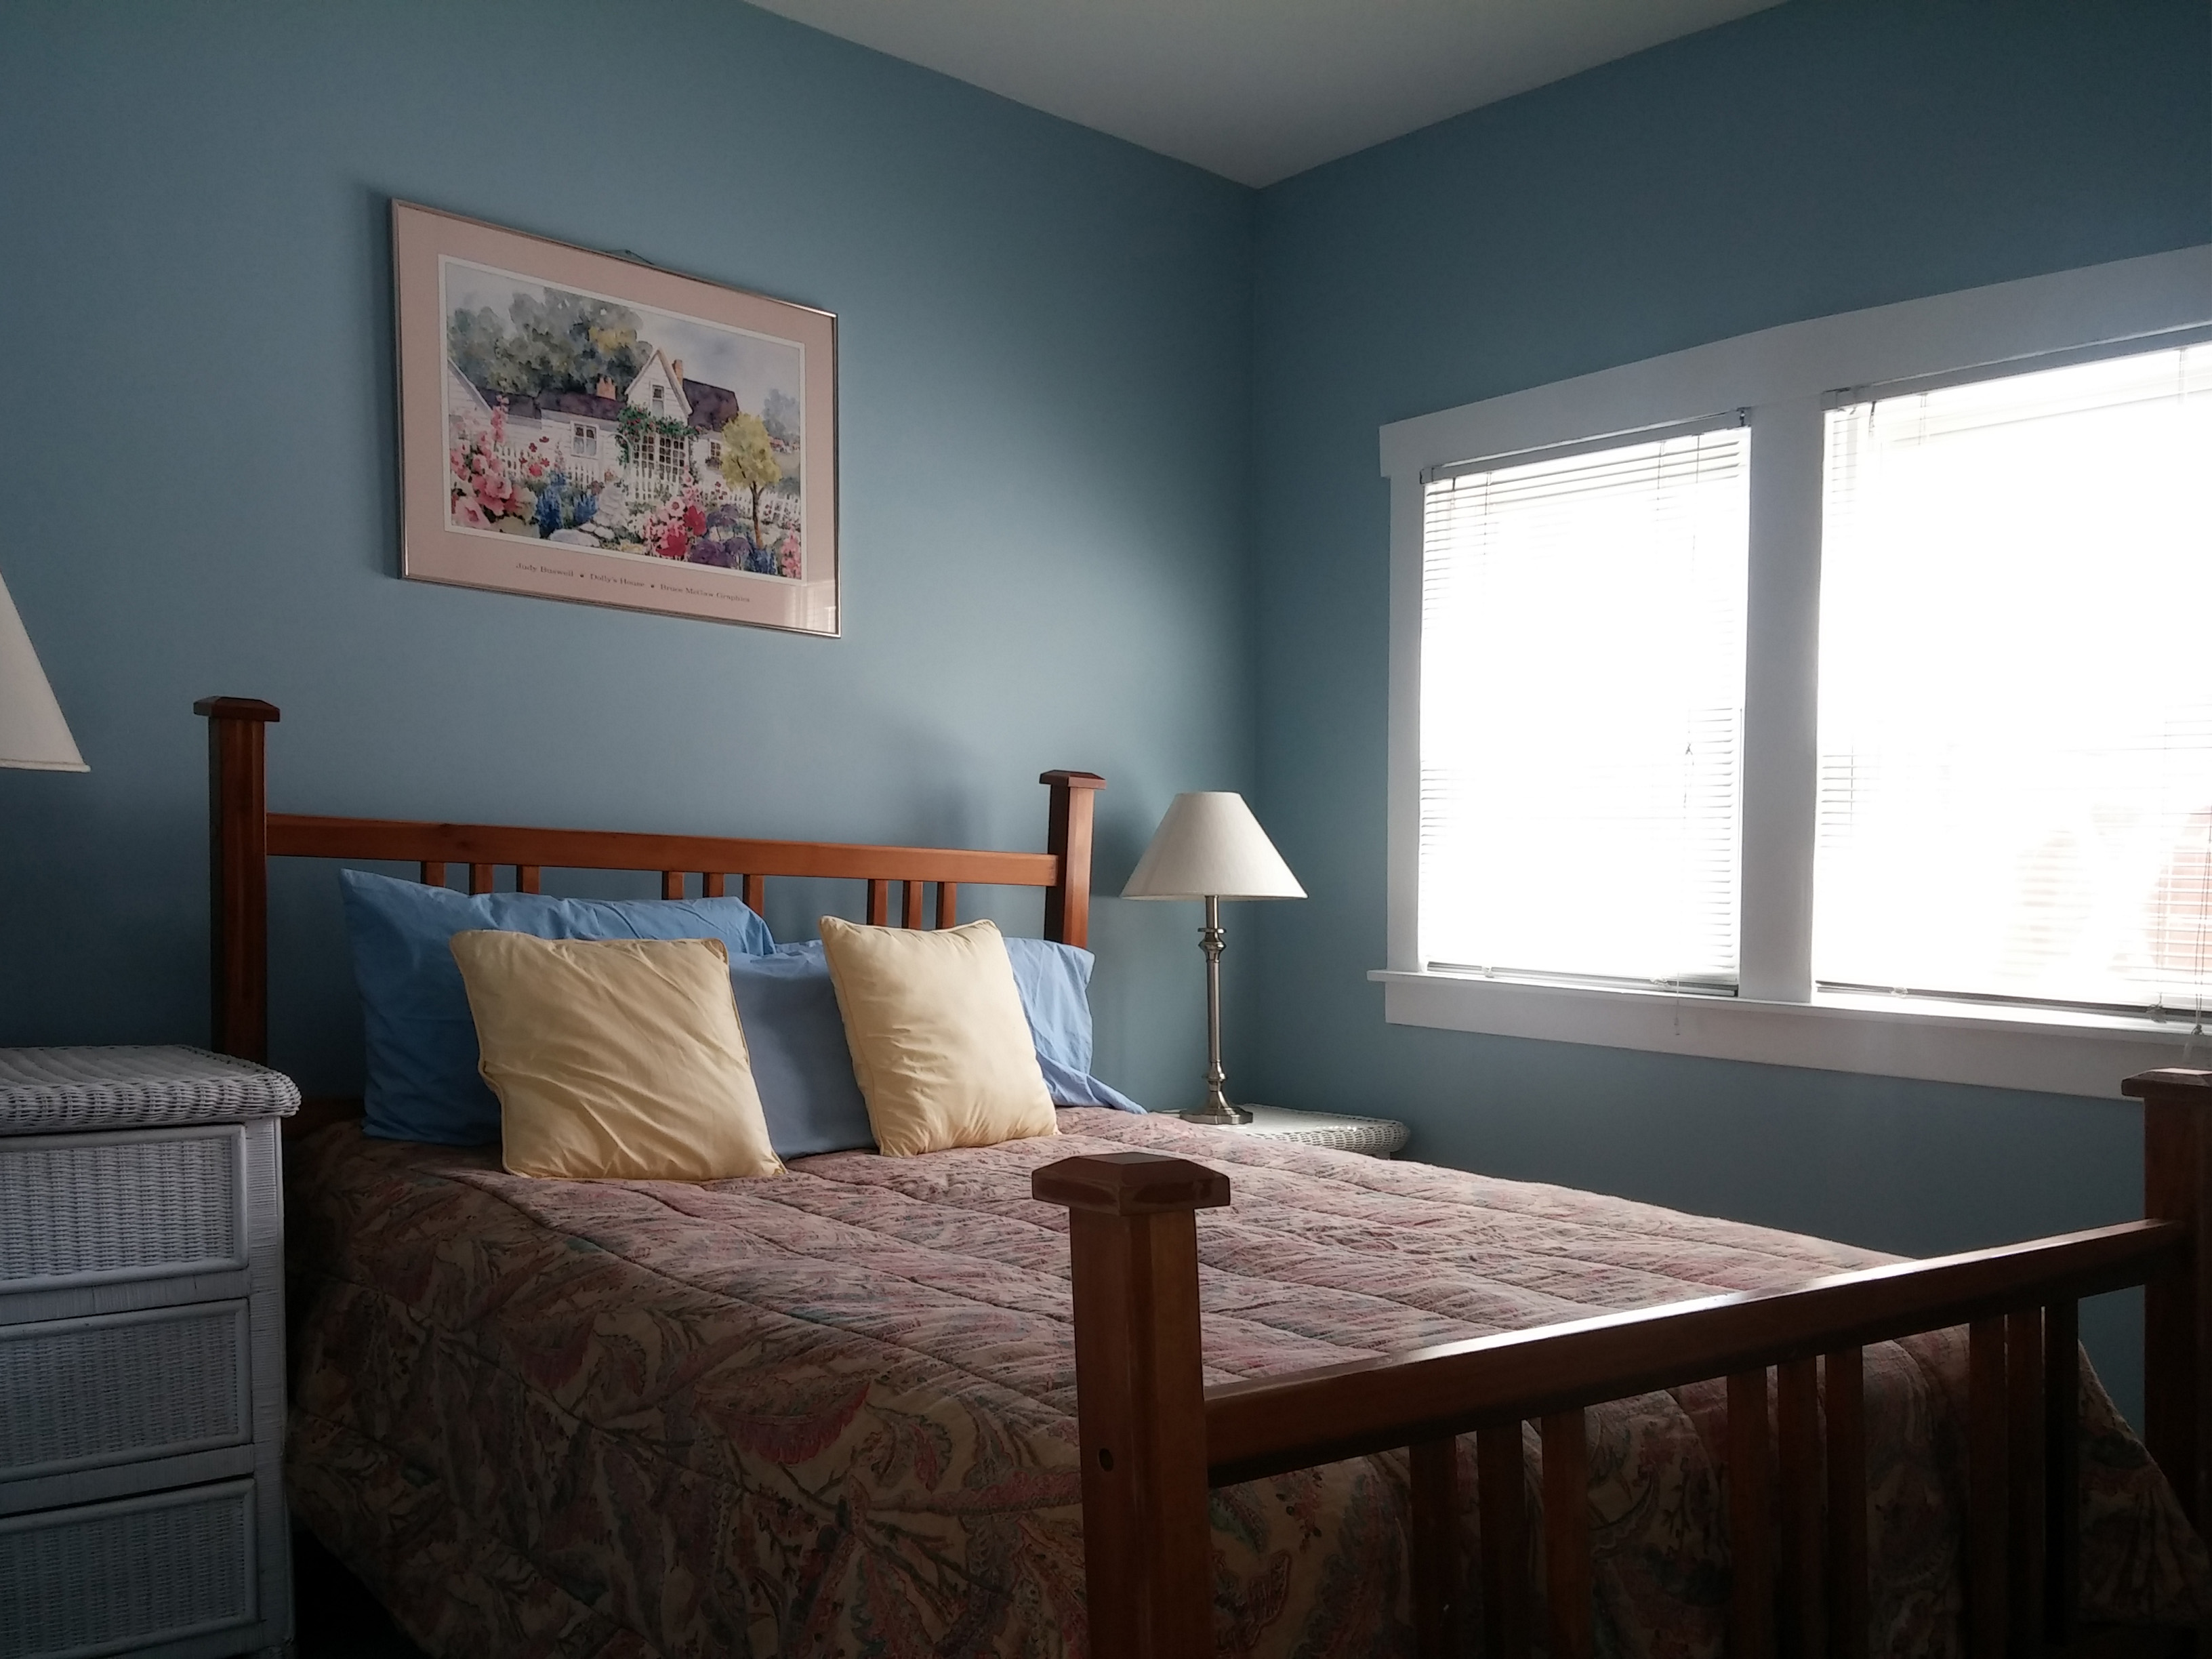 Cottage a interior views beach house vacation rentals in lakeside mi - Houses bedroom first floor fit needs ...